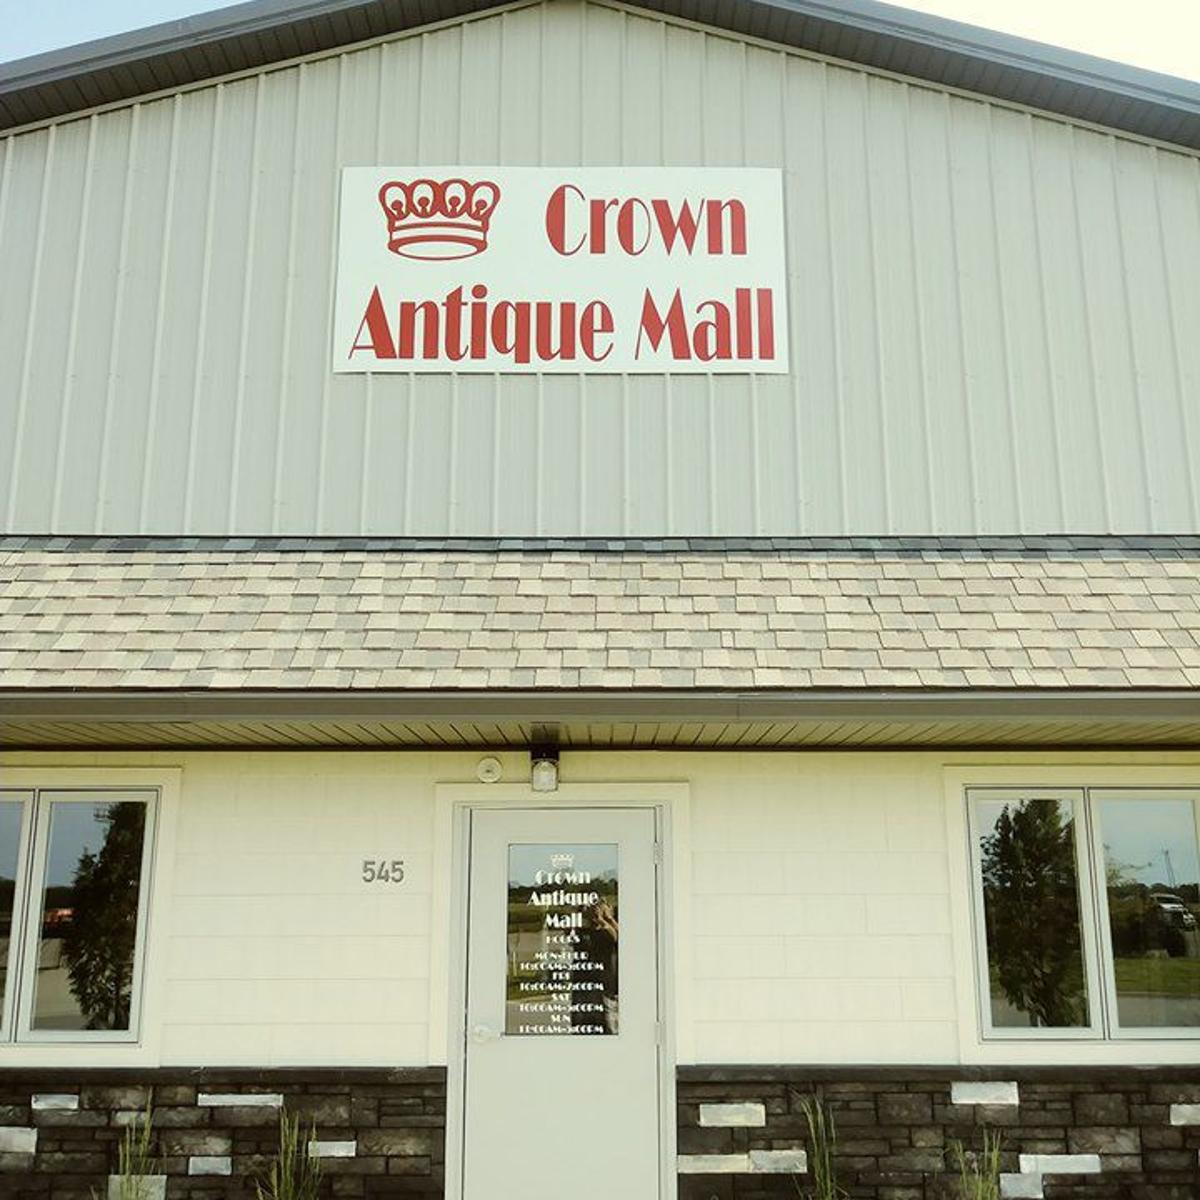 997dbfeaa69b7 City Council gives final OK before Crown Antique Mall's grand ...